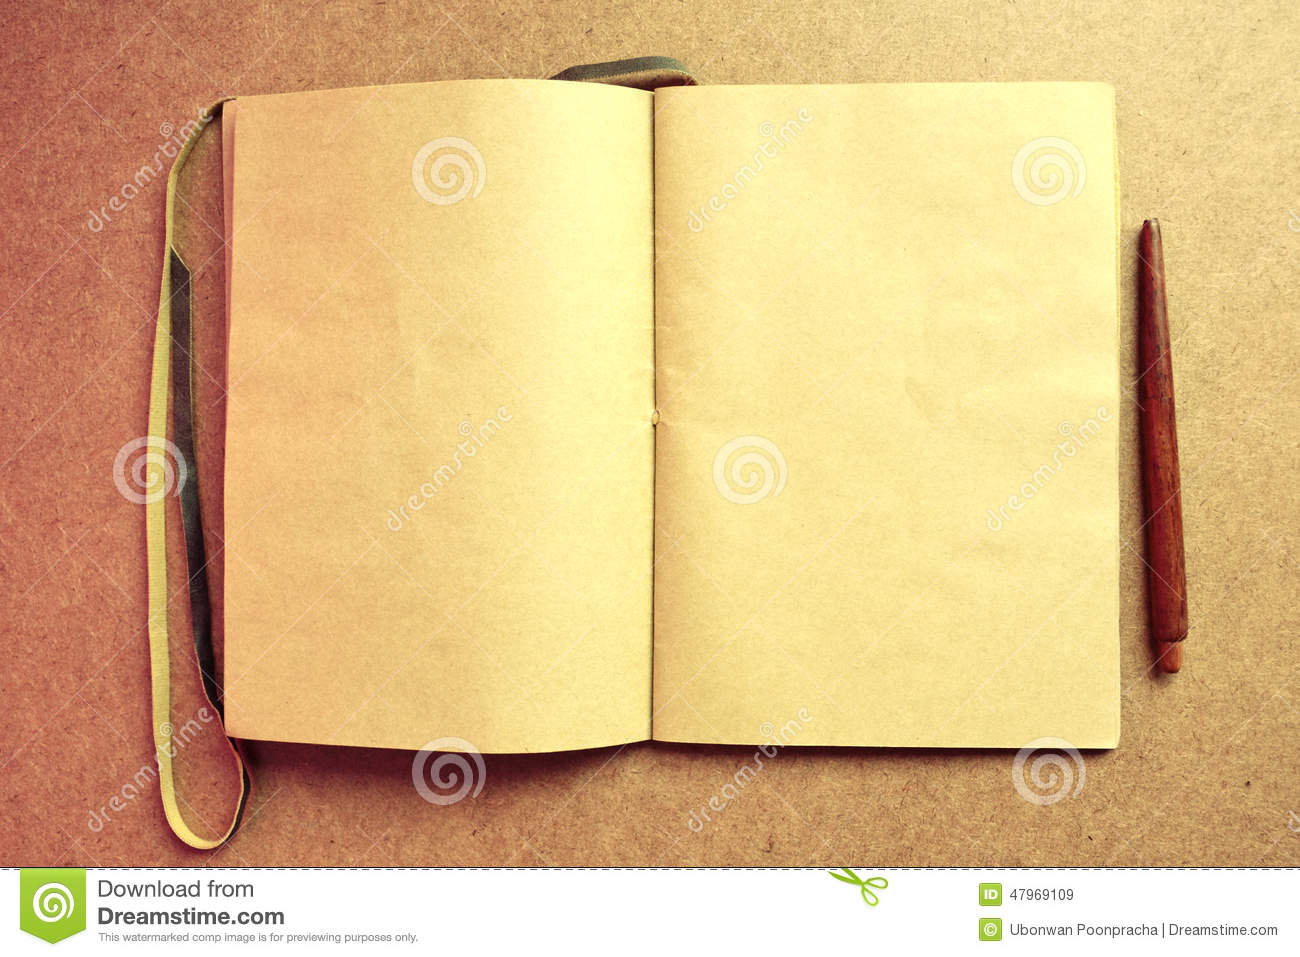 Powerpoint Backgrounds Book Cover : Old open book blank and pen on wooden background stock